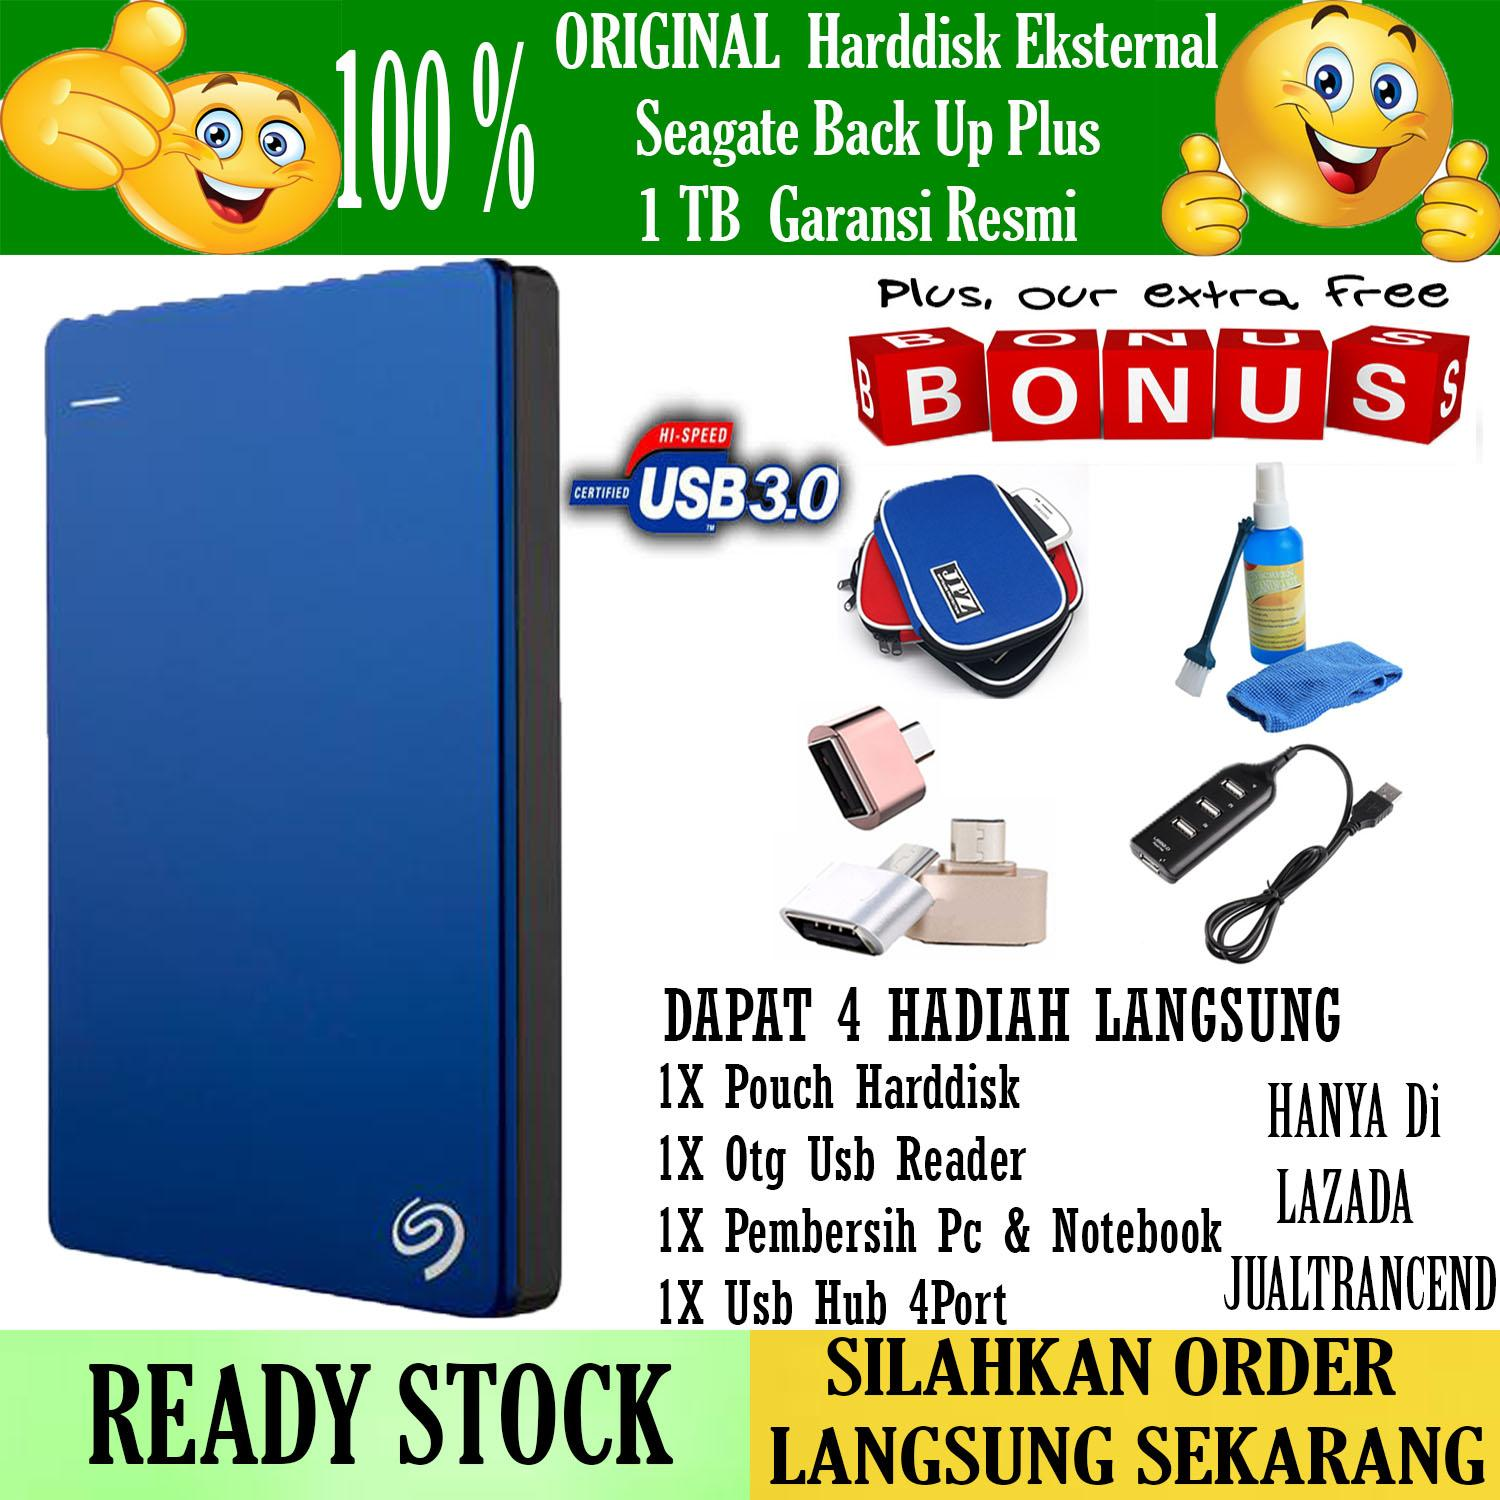 Seagate Backup Plus Slim 1TB - HDD - HD - Hardisk External 2.5  + Gratis Pouch Harddisk + Otg Android + Cleaning Kit ( Pembersih PC & Notebook + Usb Hub 4Port